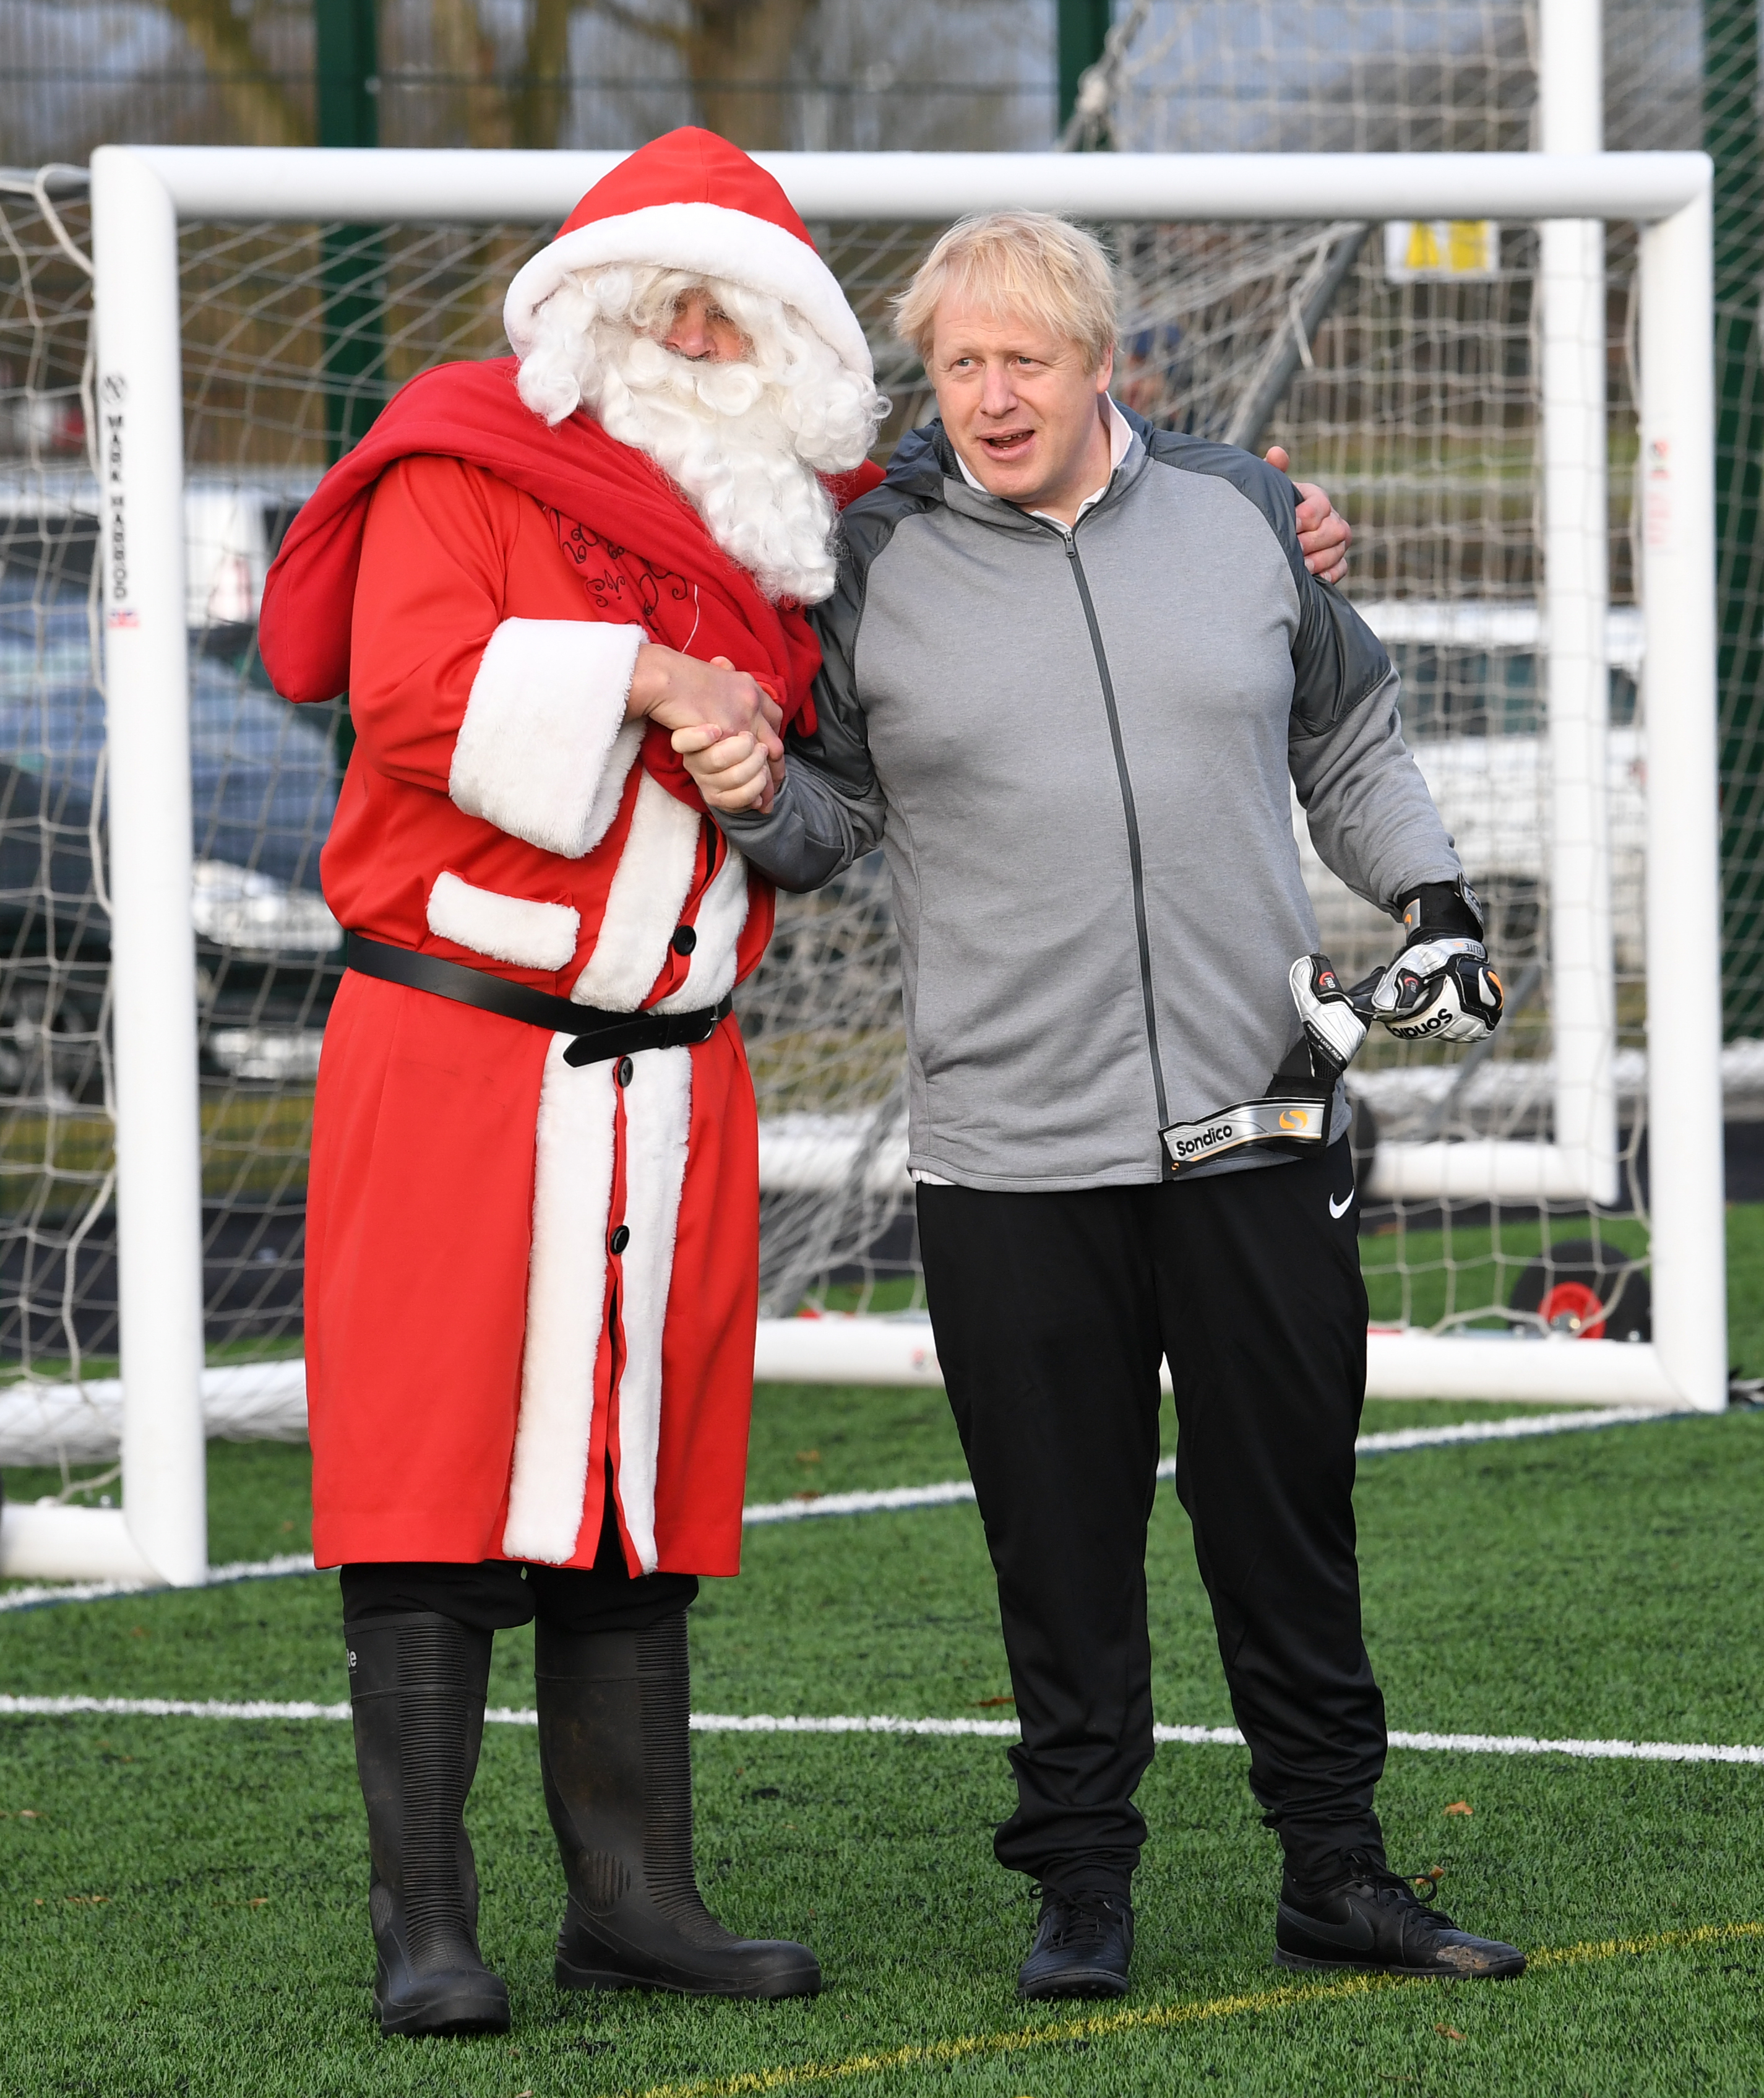 Prime Minister Boris Johnson with a man dressed as Father Christmas before a football match between Hazel Grove Utd and Poynton Jnr u10s in the Cheshire Girls football league in Cheadle Hume, Cheshire, while on the election campaign trail.